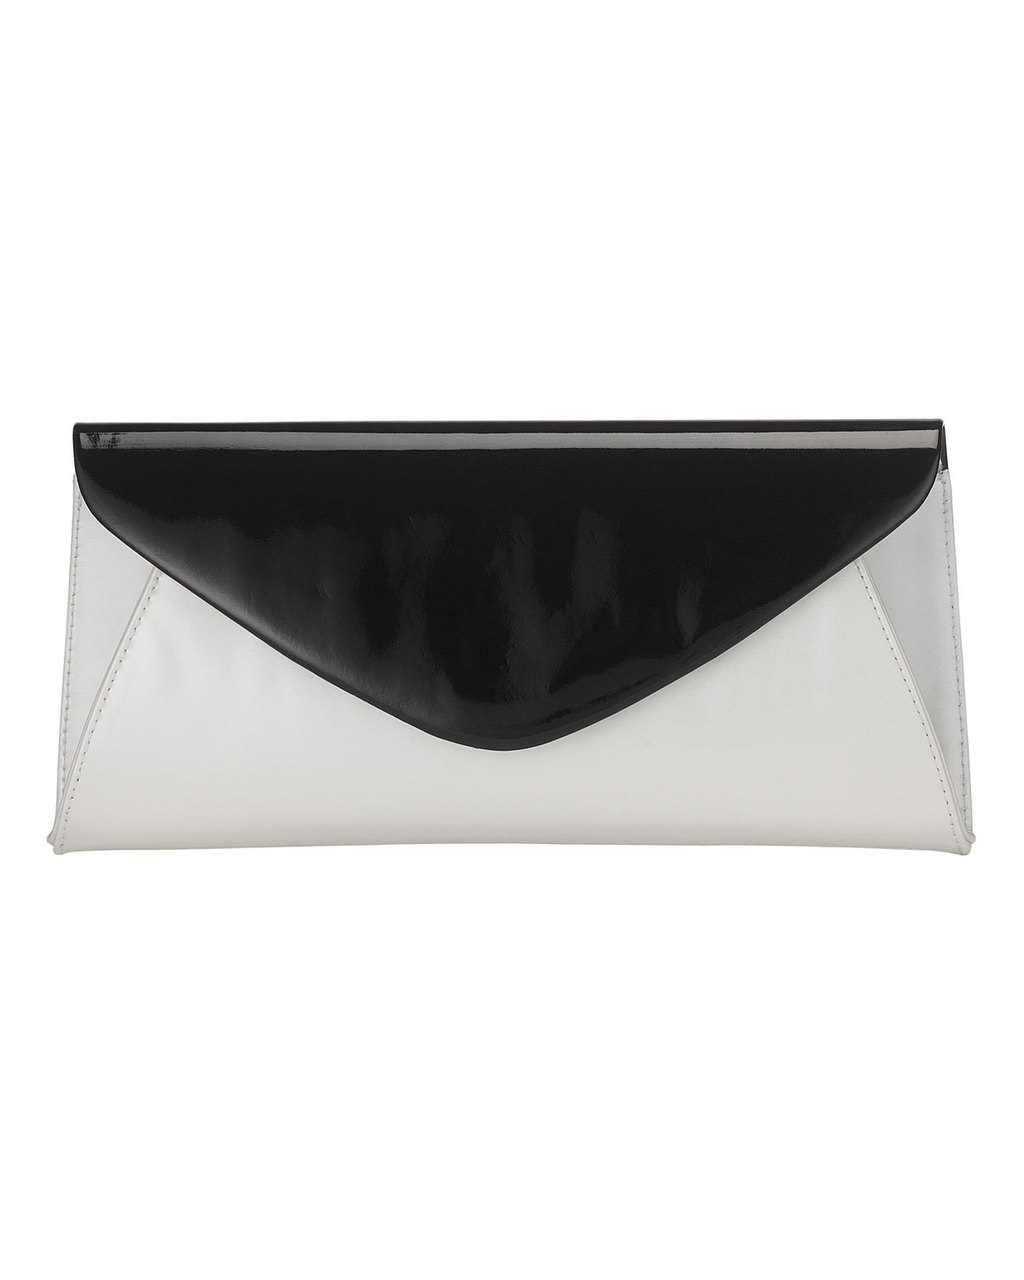 Sammy Leather Clutch - secondary colour: light grey; predominant colour: black; occasions: evening, occasion; type of pattern: standard; style: clutch; length: hand carry; size: standard; material: leather; finish: plain; pattern: colourblock; season: s/s 2016; wardrobe: event